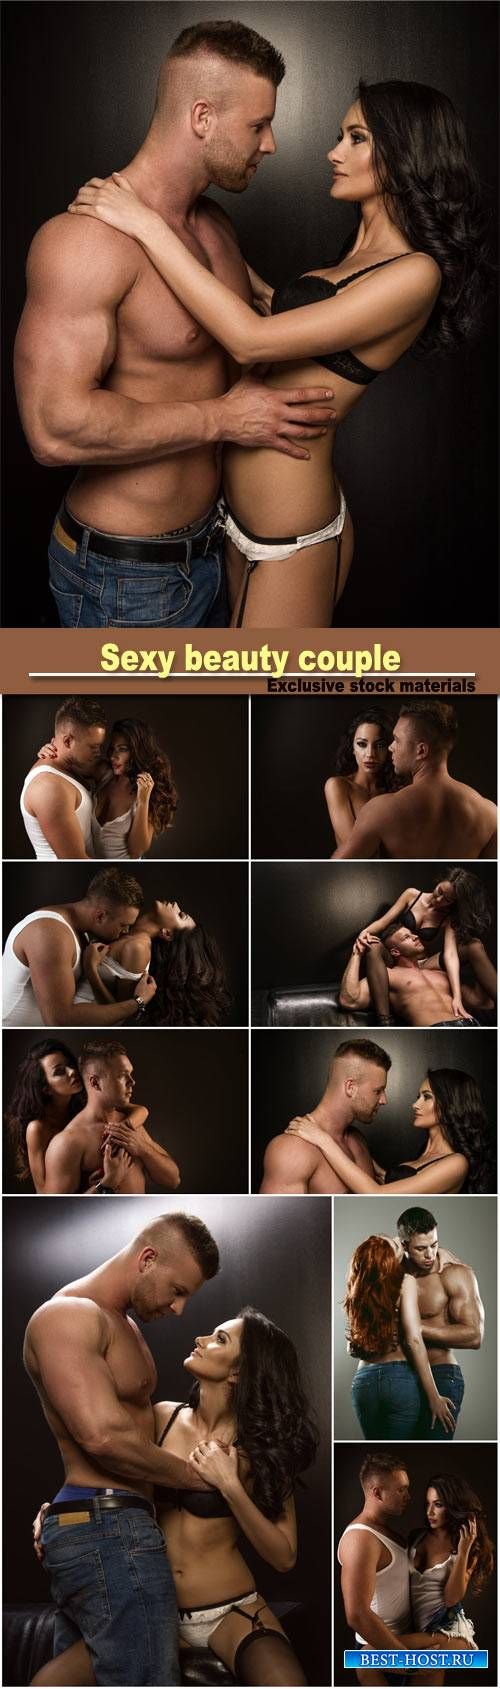 Sexy beauty couple, passionate couple in studio